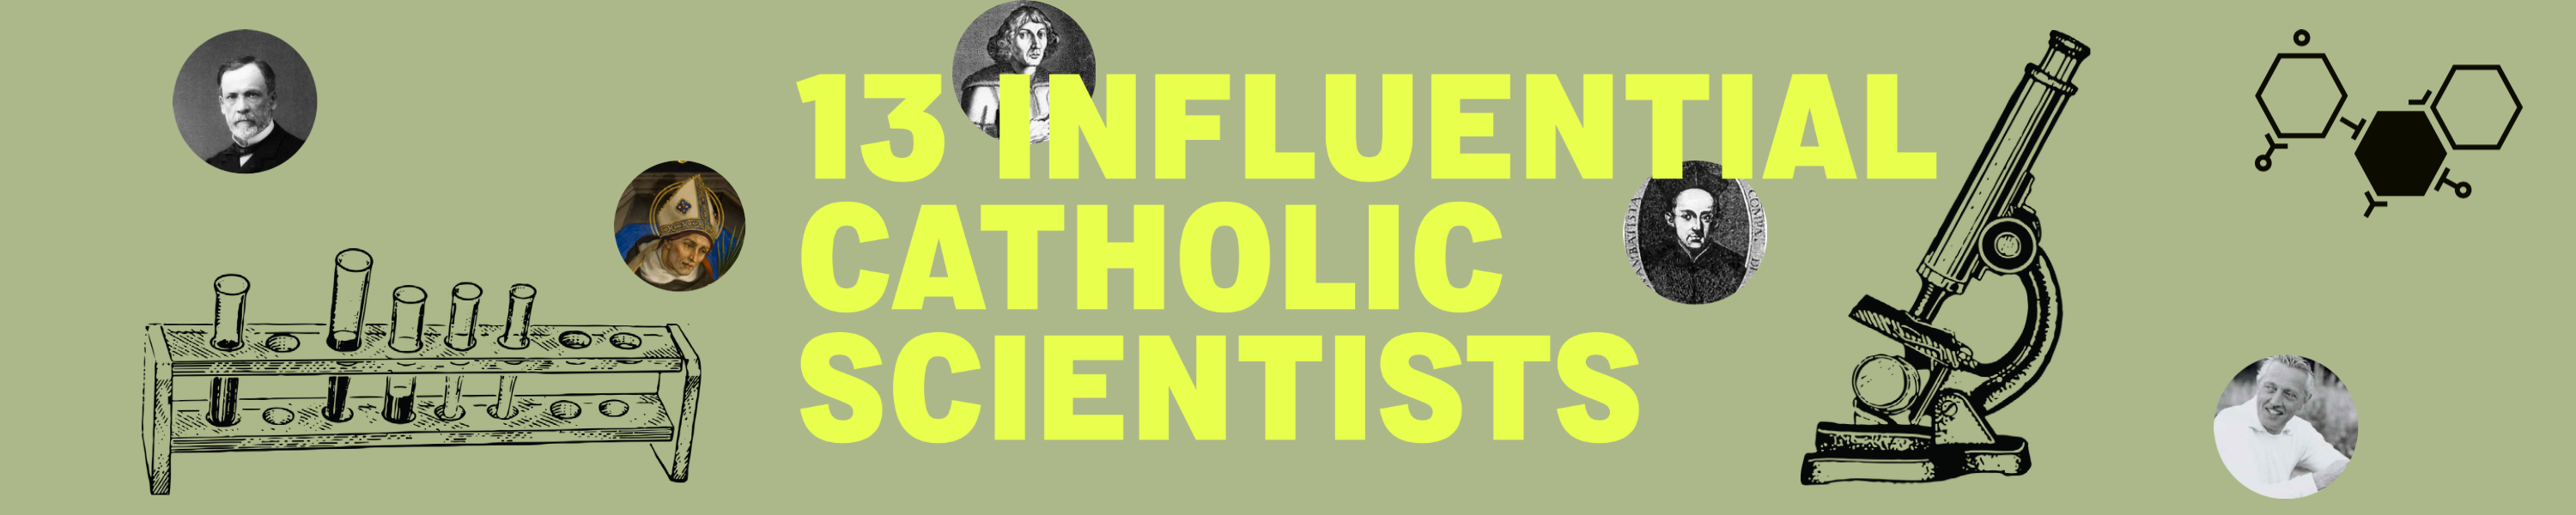 13 INFLUENTIAL CATHOLIC SCIENTISTS BANNER-3